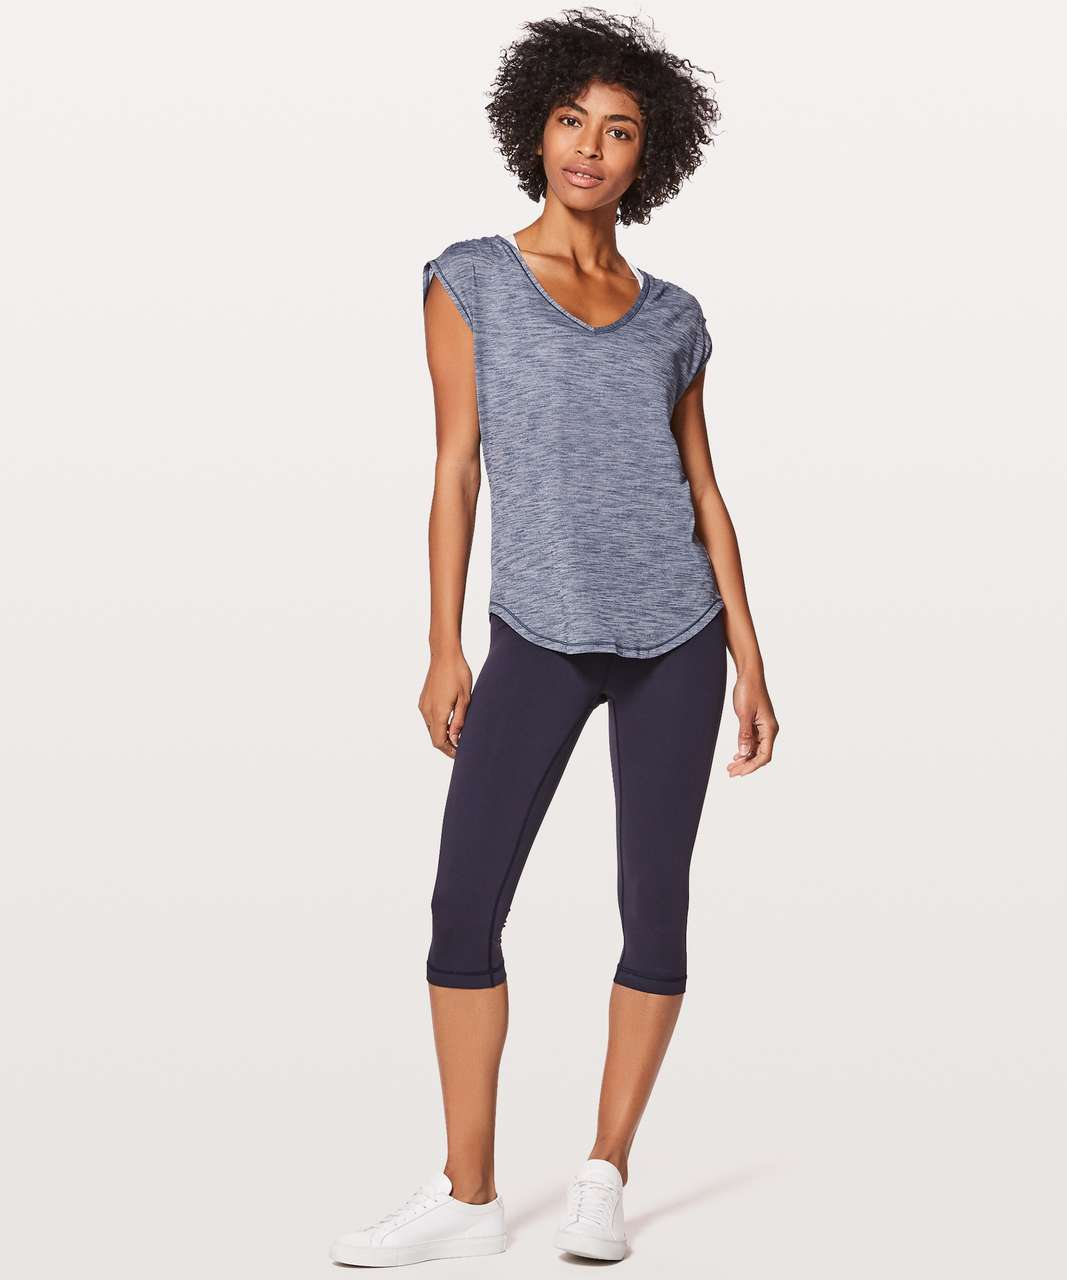 Lululemon Sweat Times Short Sleeve - Heathered Dazed